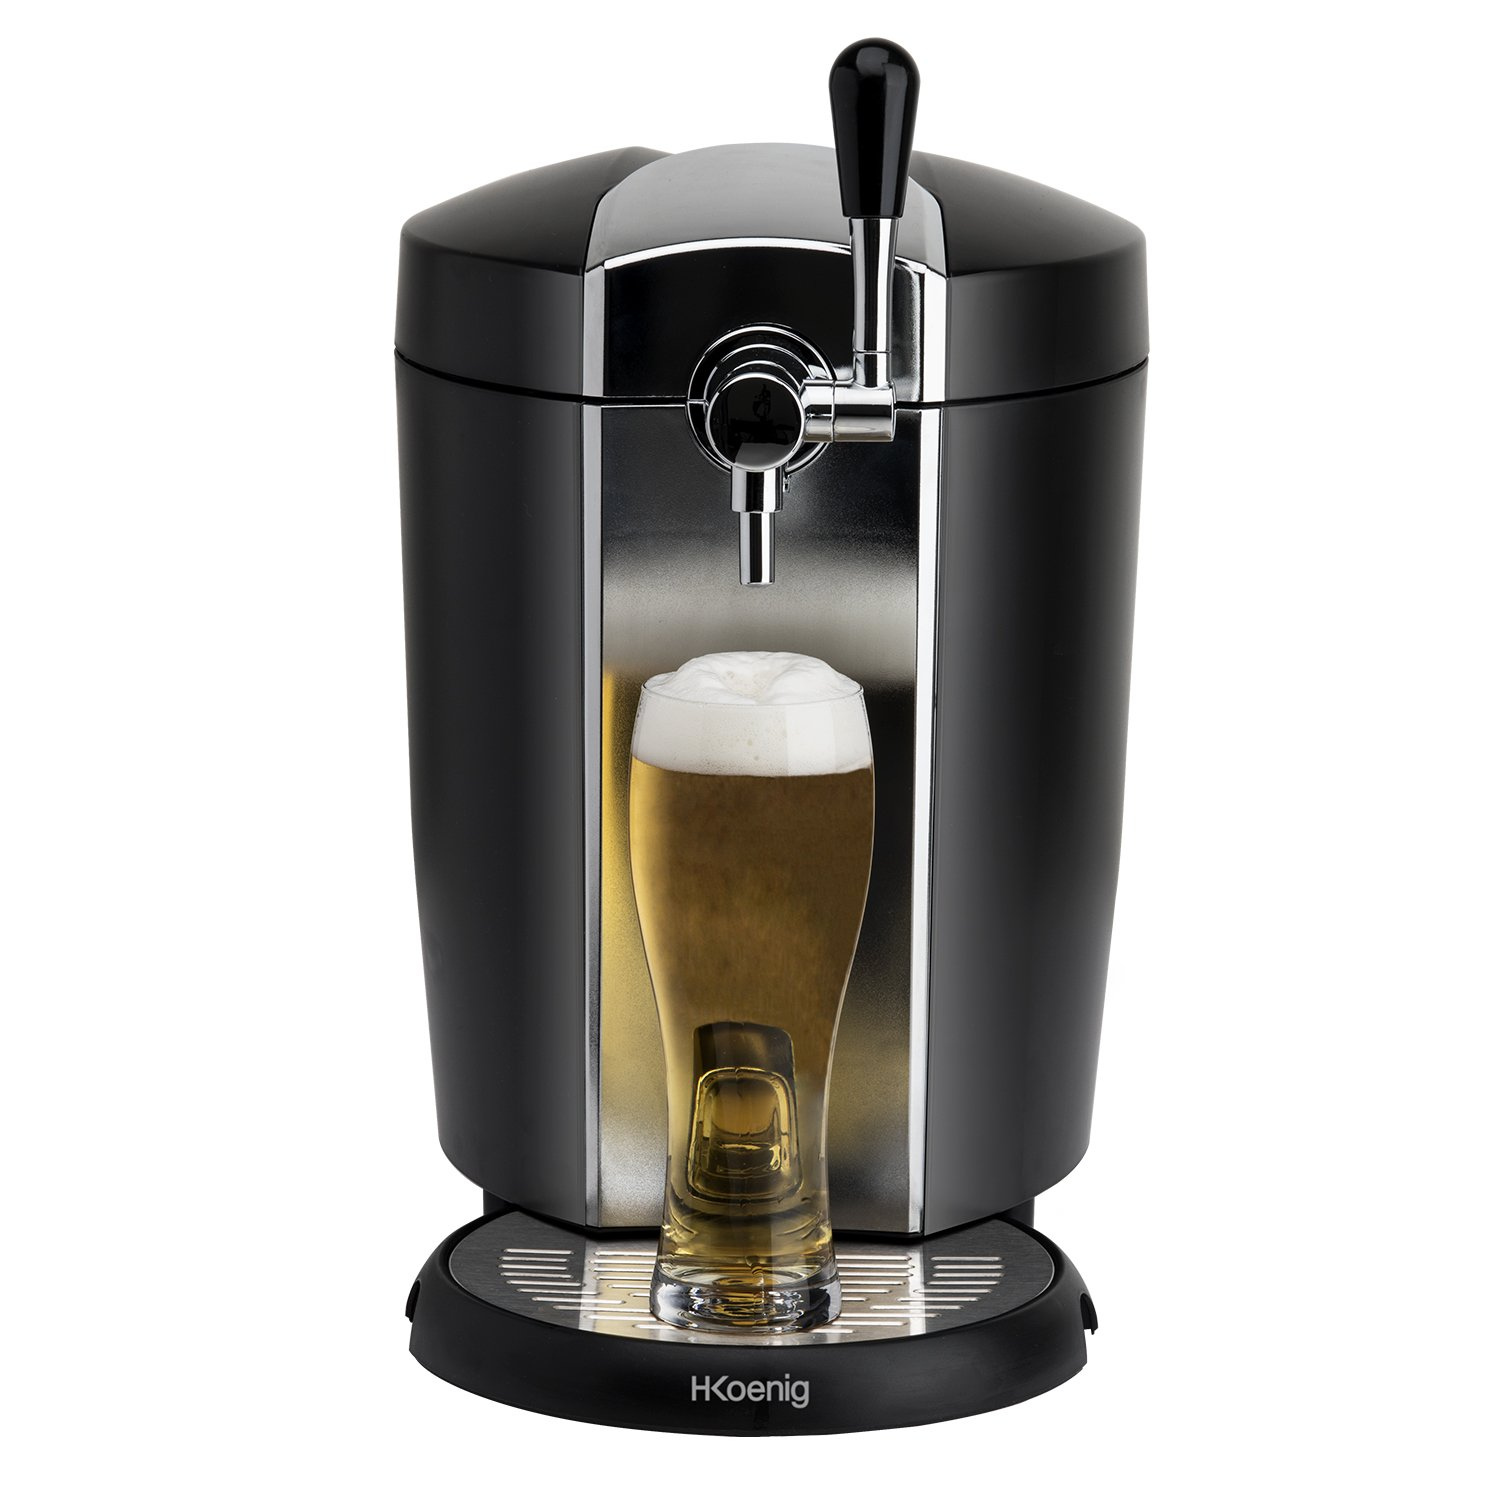 H.KOENIG BW1778 Beer Dispenser, 65 W